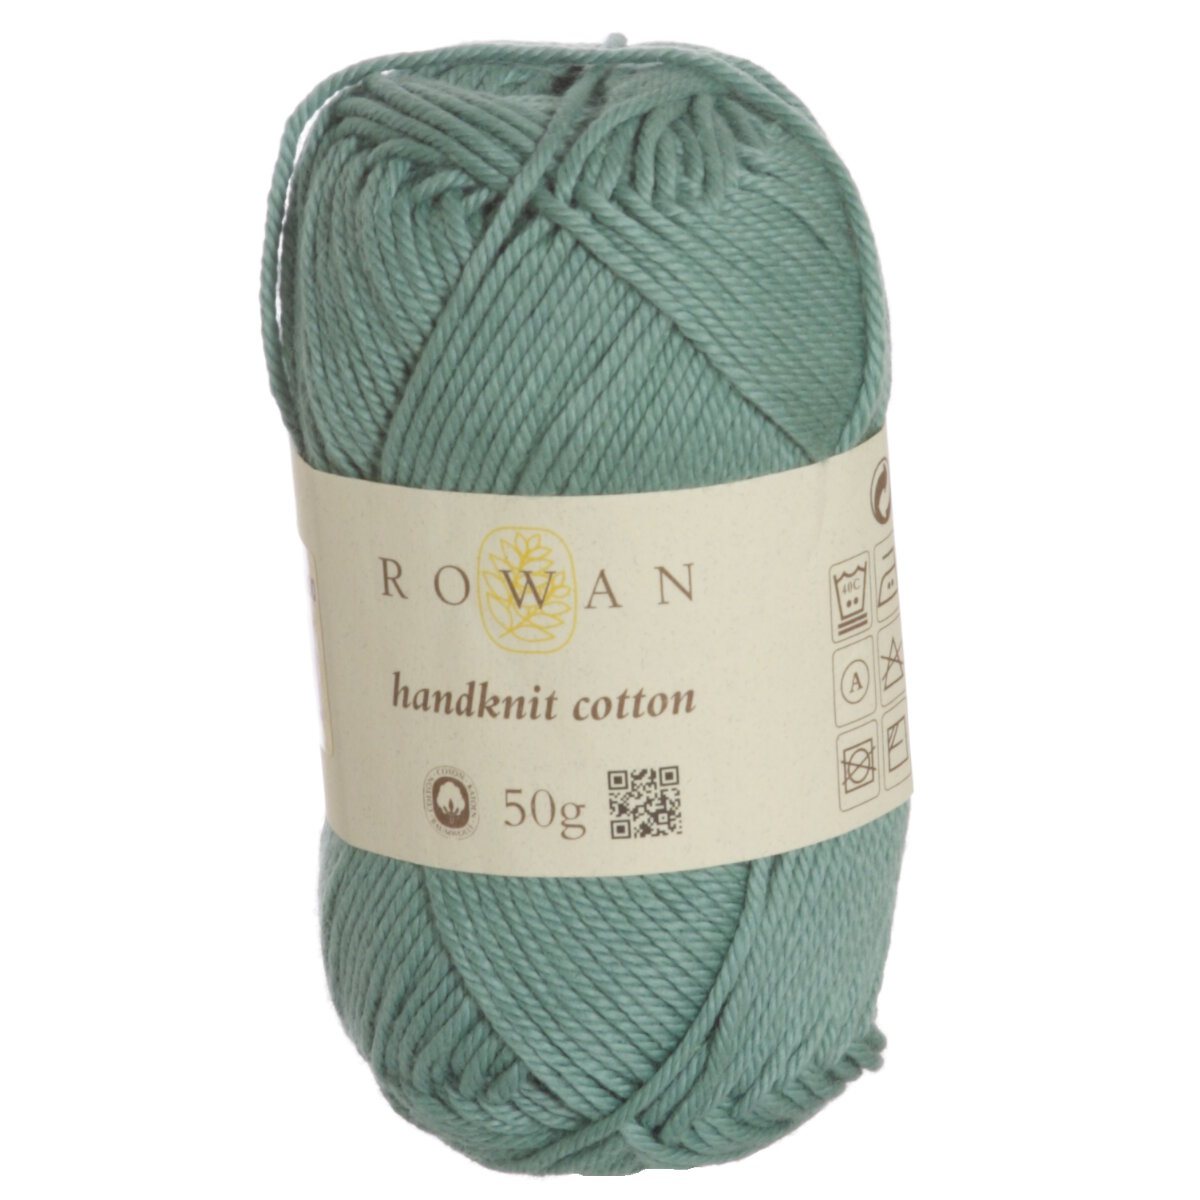 Rowan Handknit Cotton Yarn at Jimmy Beans Wool